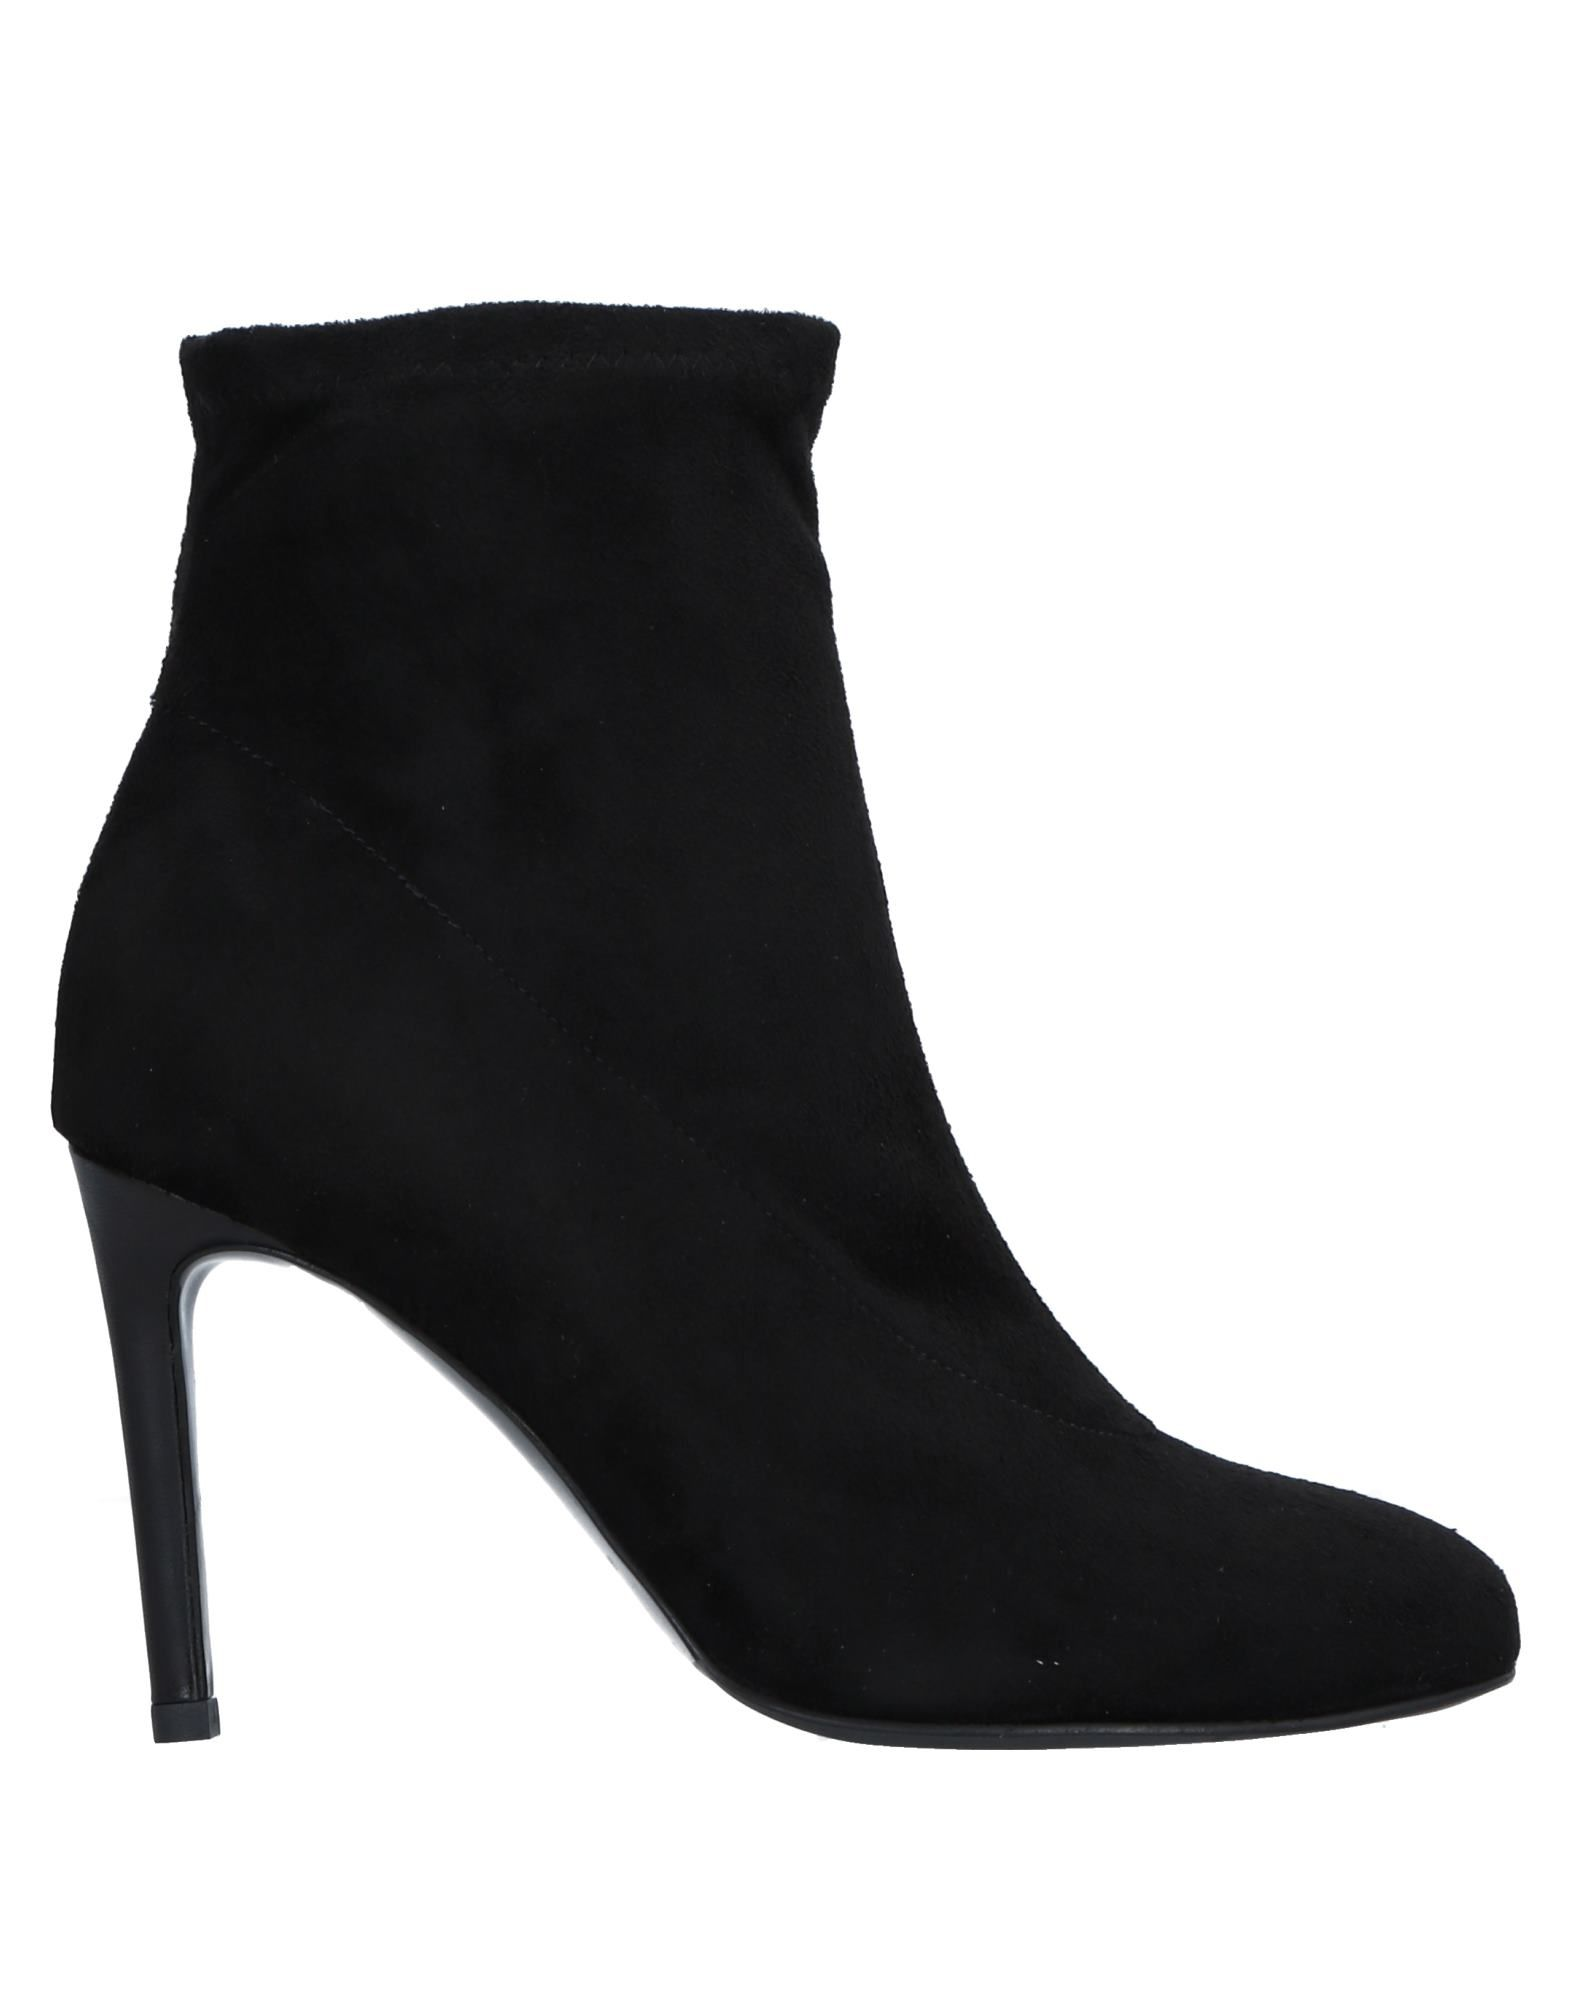 Gianni Marra Ankle Marra Boot - Women Gianni Marra Ankle Ankle Boots online on  Australia - 11543310AA 442afb